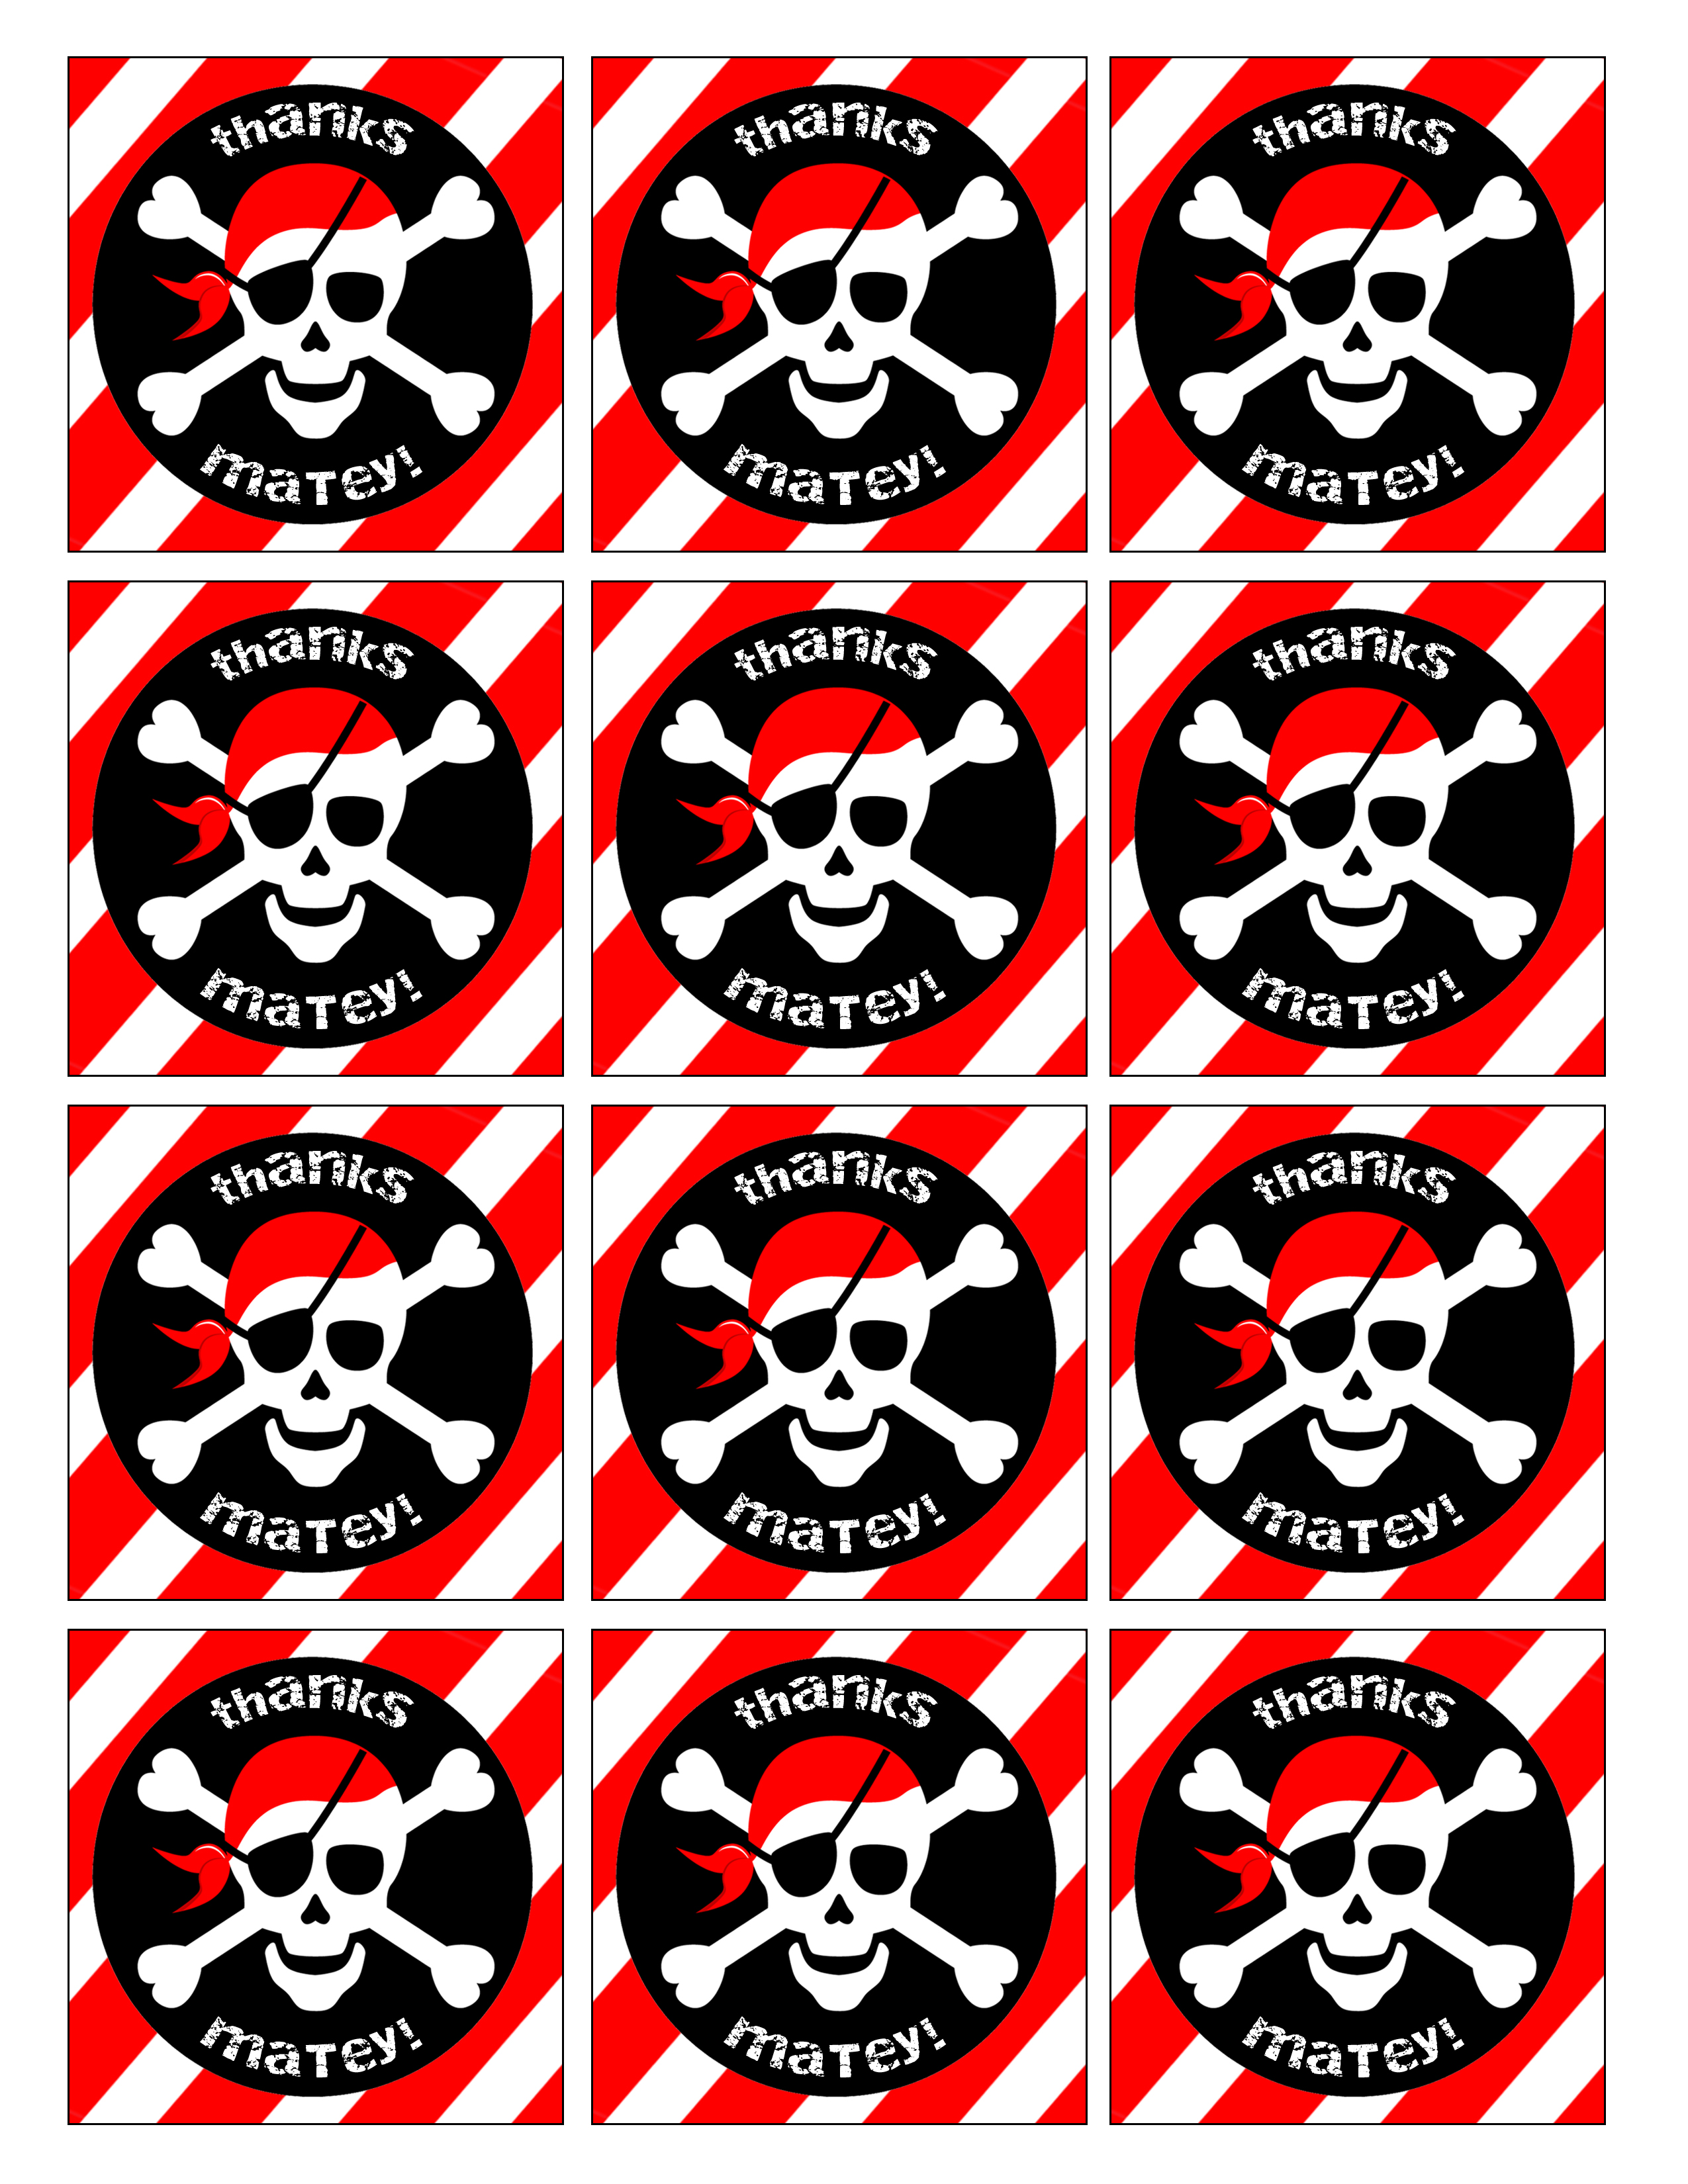 7 Images of Free Pirate Printables